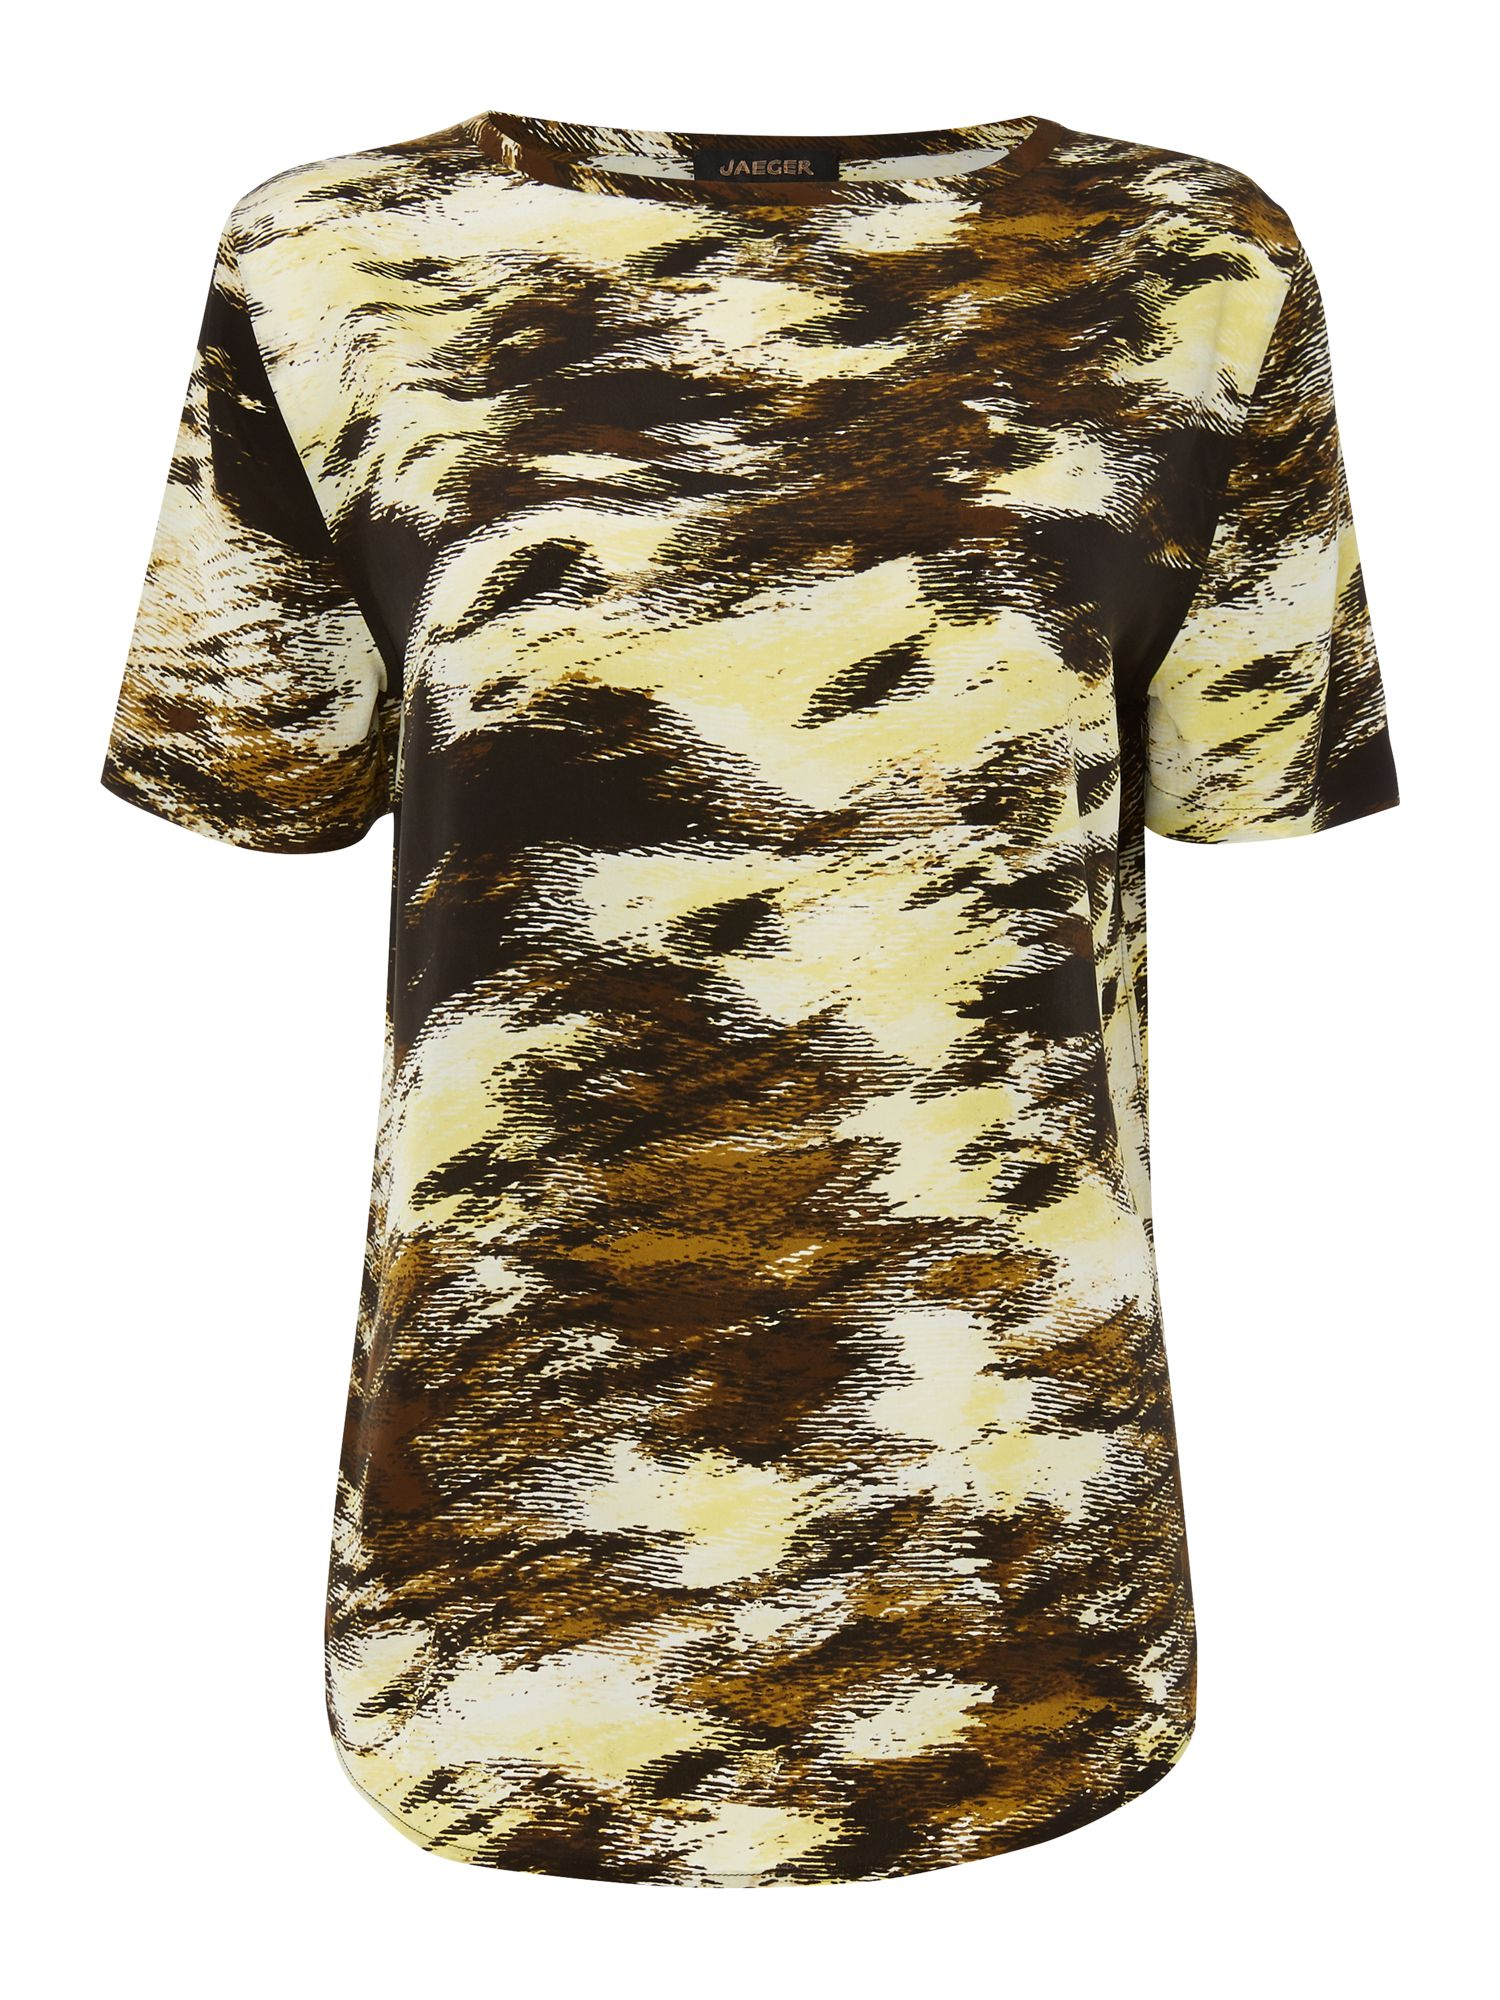 Blurred Print T-shirt